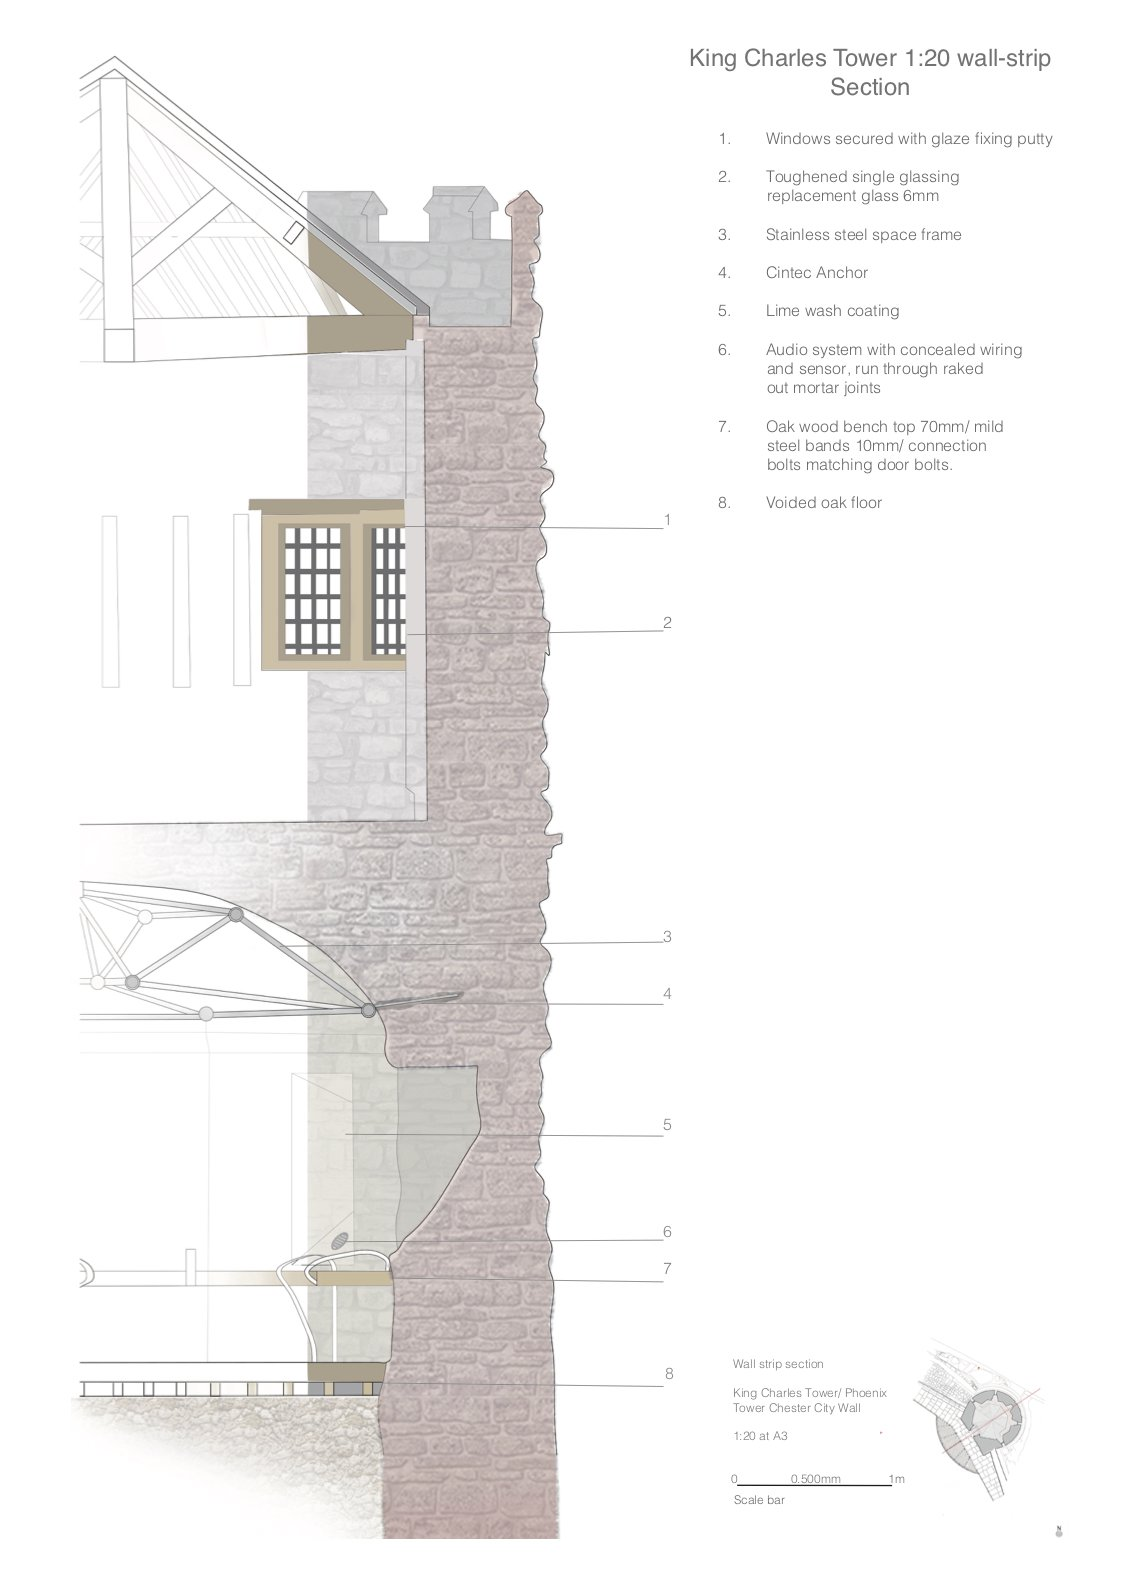 Neil Palmer_Annotated Drawings_King Charles Tower_Section.jpg